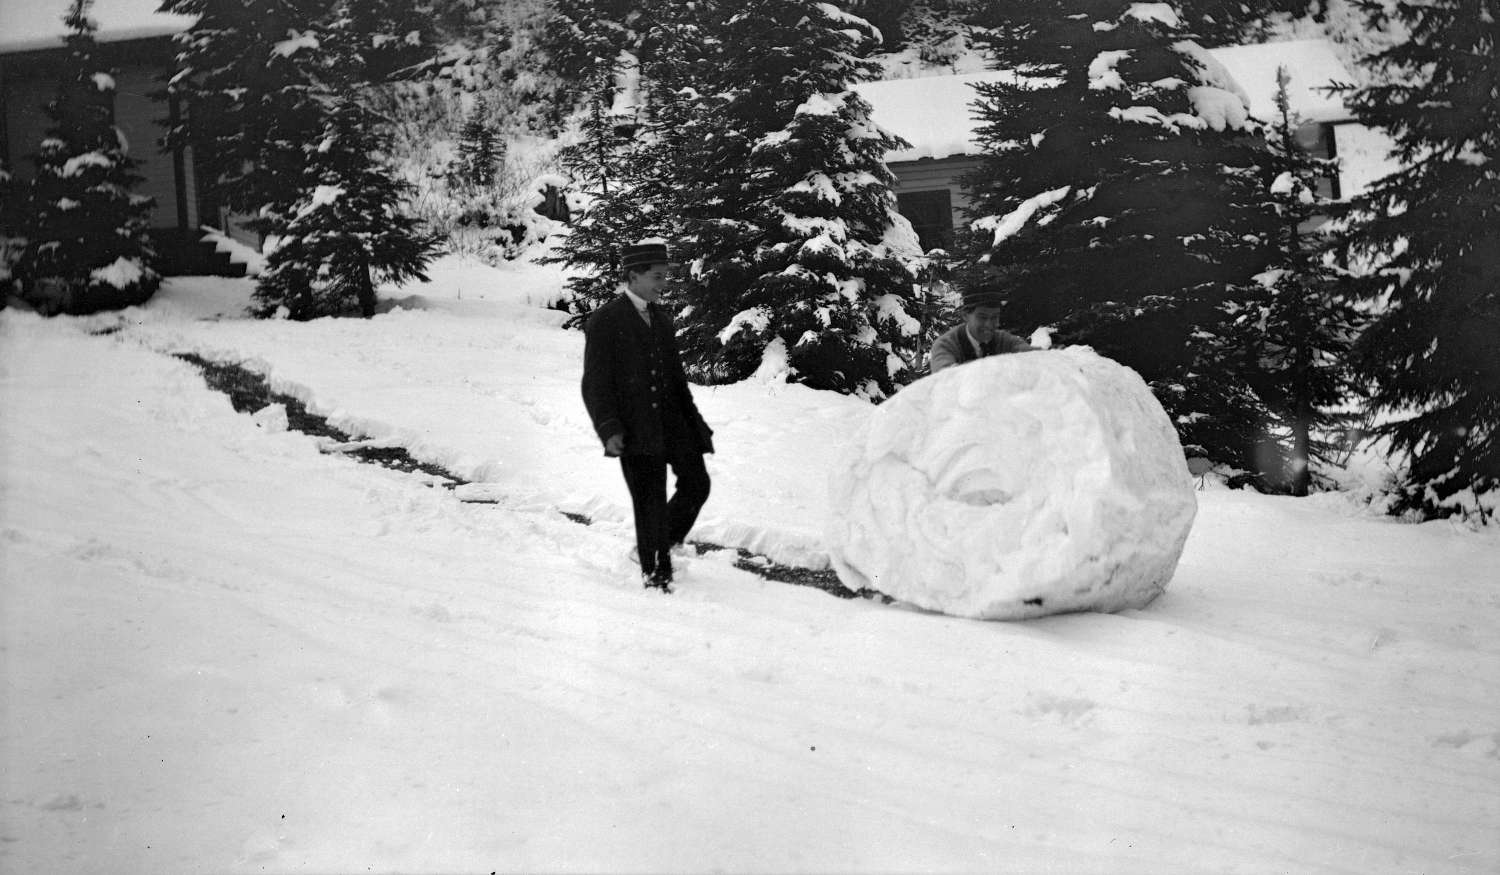 Two men rolling a snowball